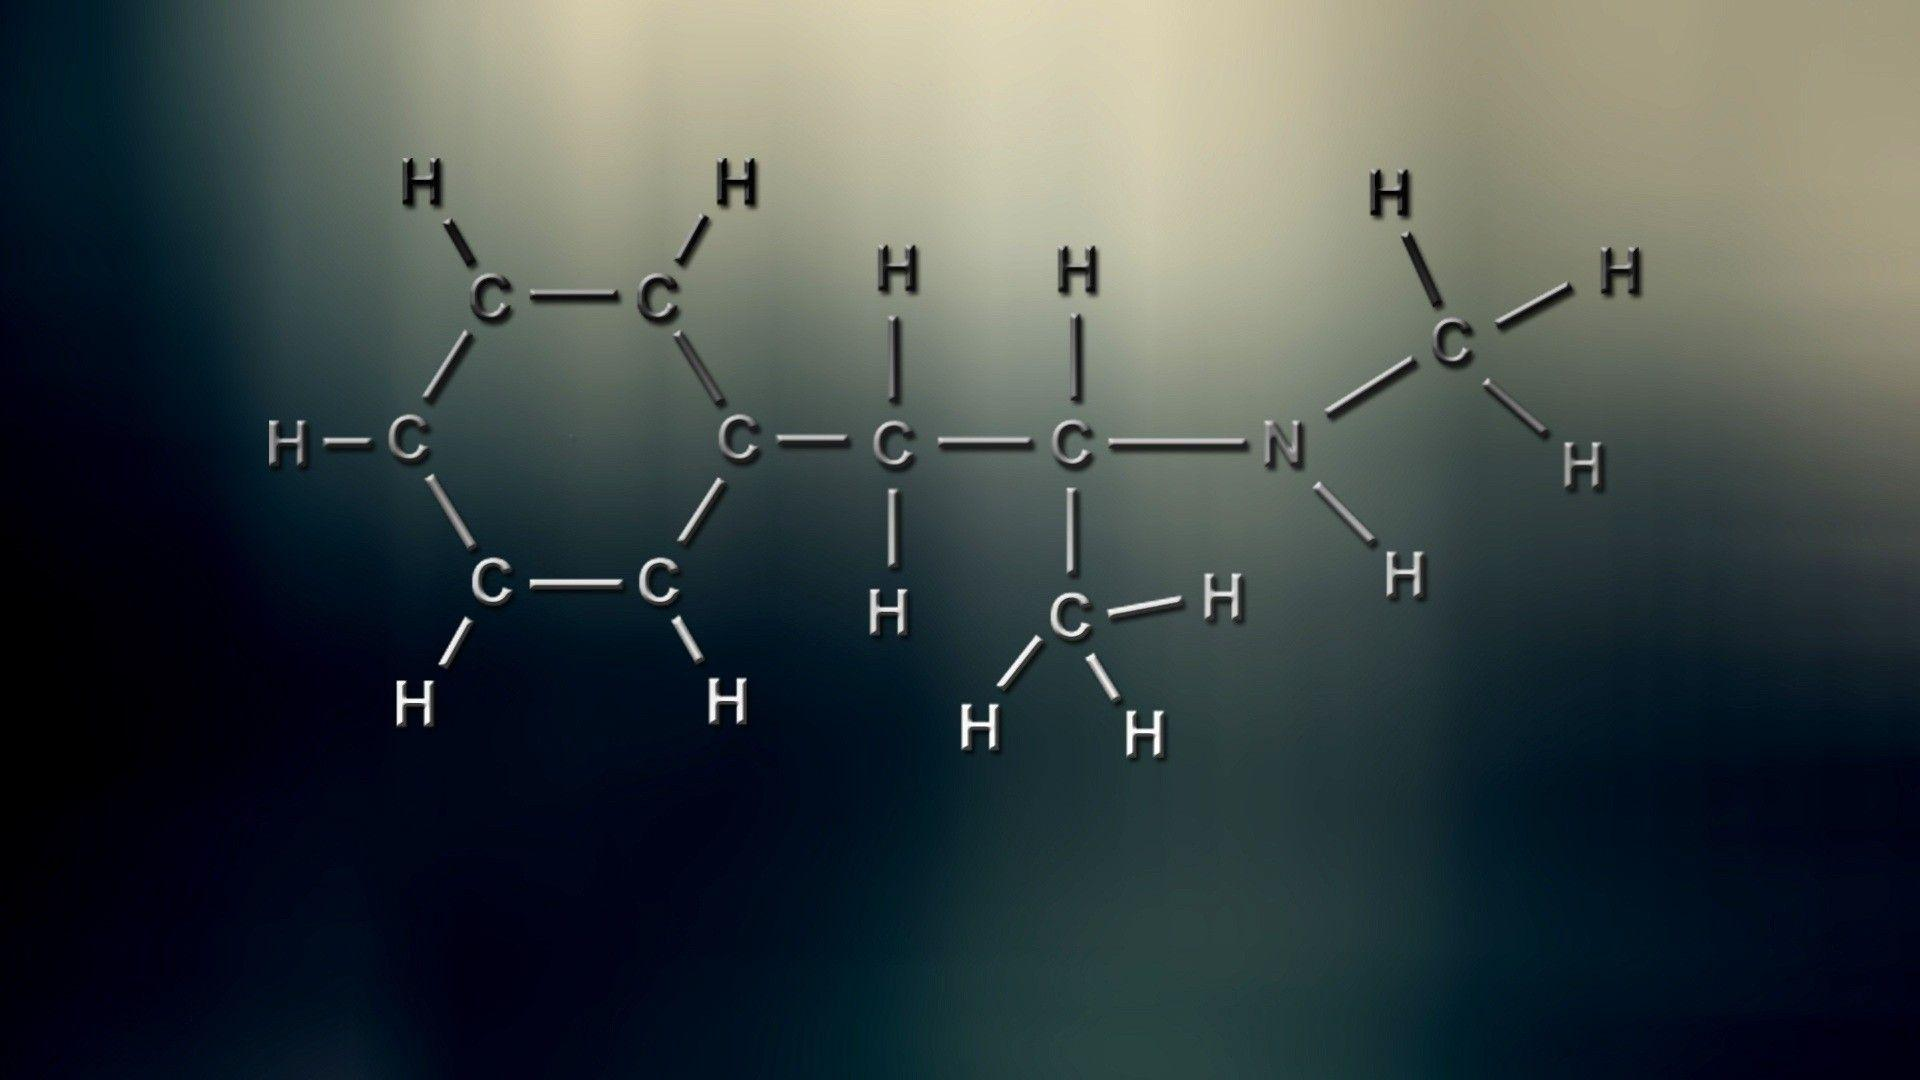 Chemistry Wallpapers - Wallpaper Cave